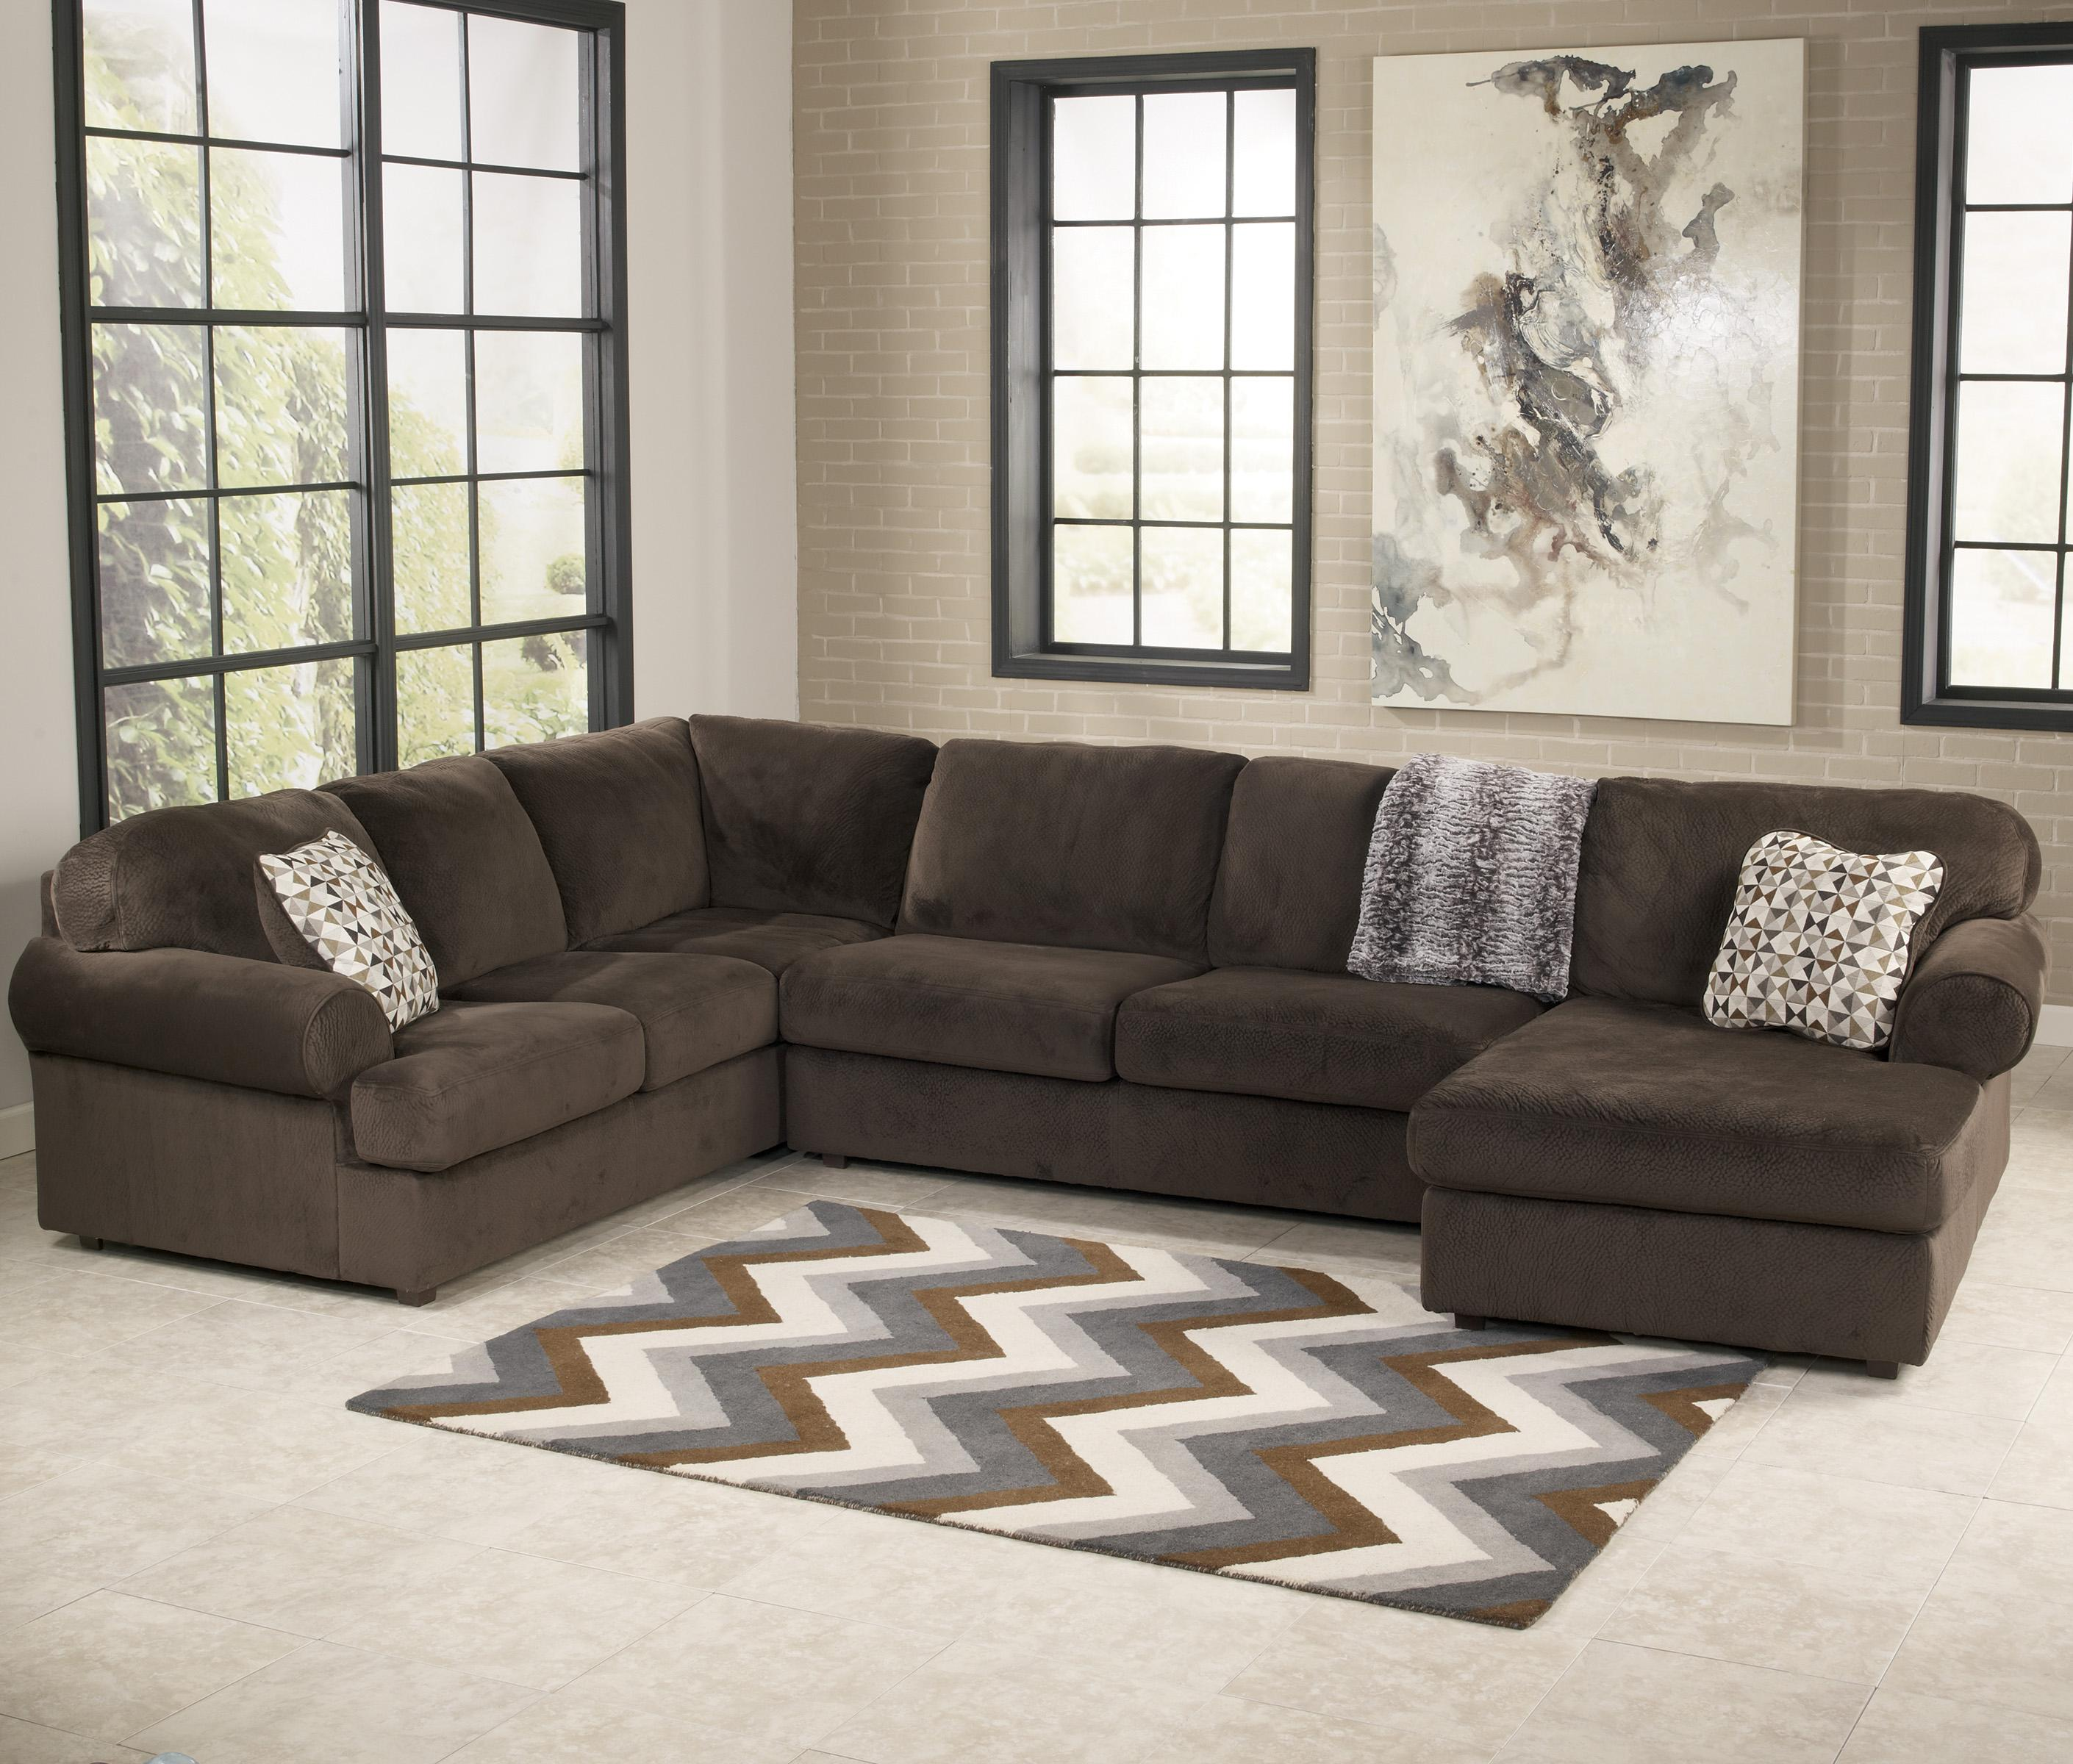 Signature Design by Ashley Jessa Place - Chocolate Sectional Sofa with Right Chaise - Item Number : ashley curved sectional - Sectionals, Sofas & Couches